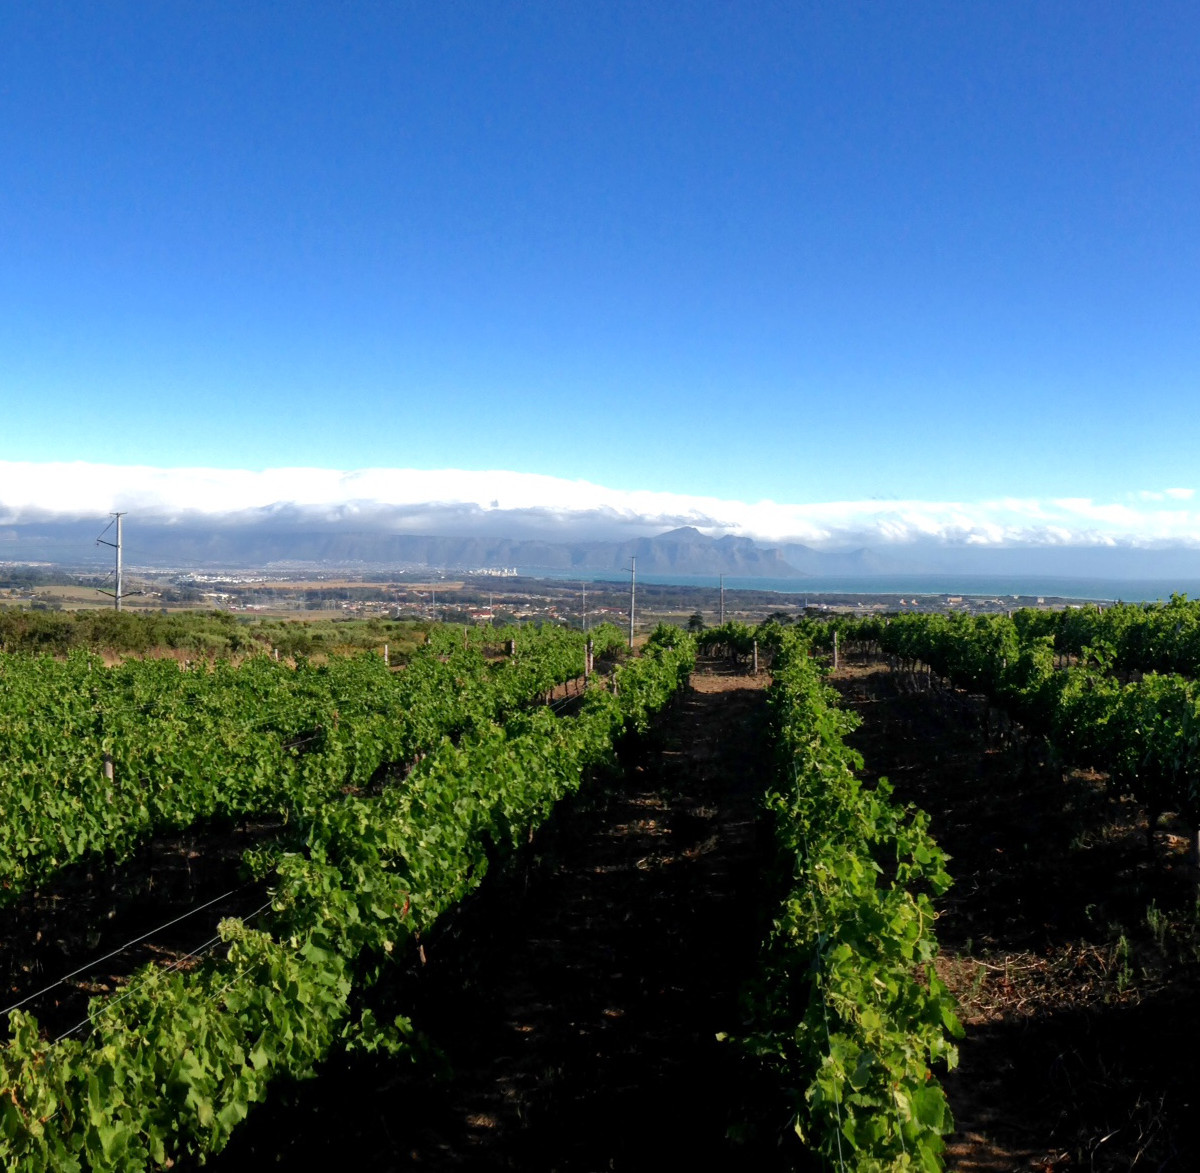 Some of the Craven Wines Vineyards.